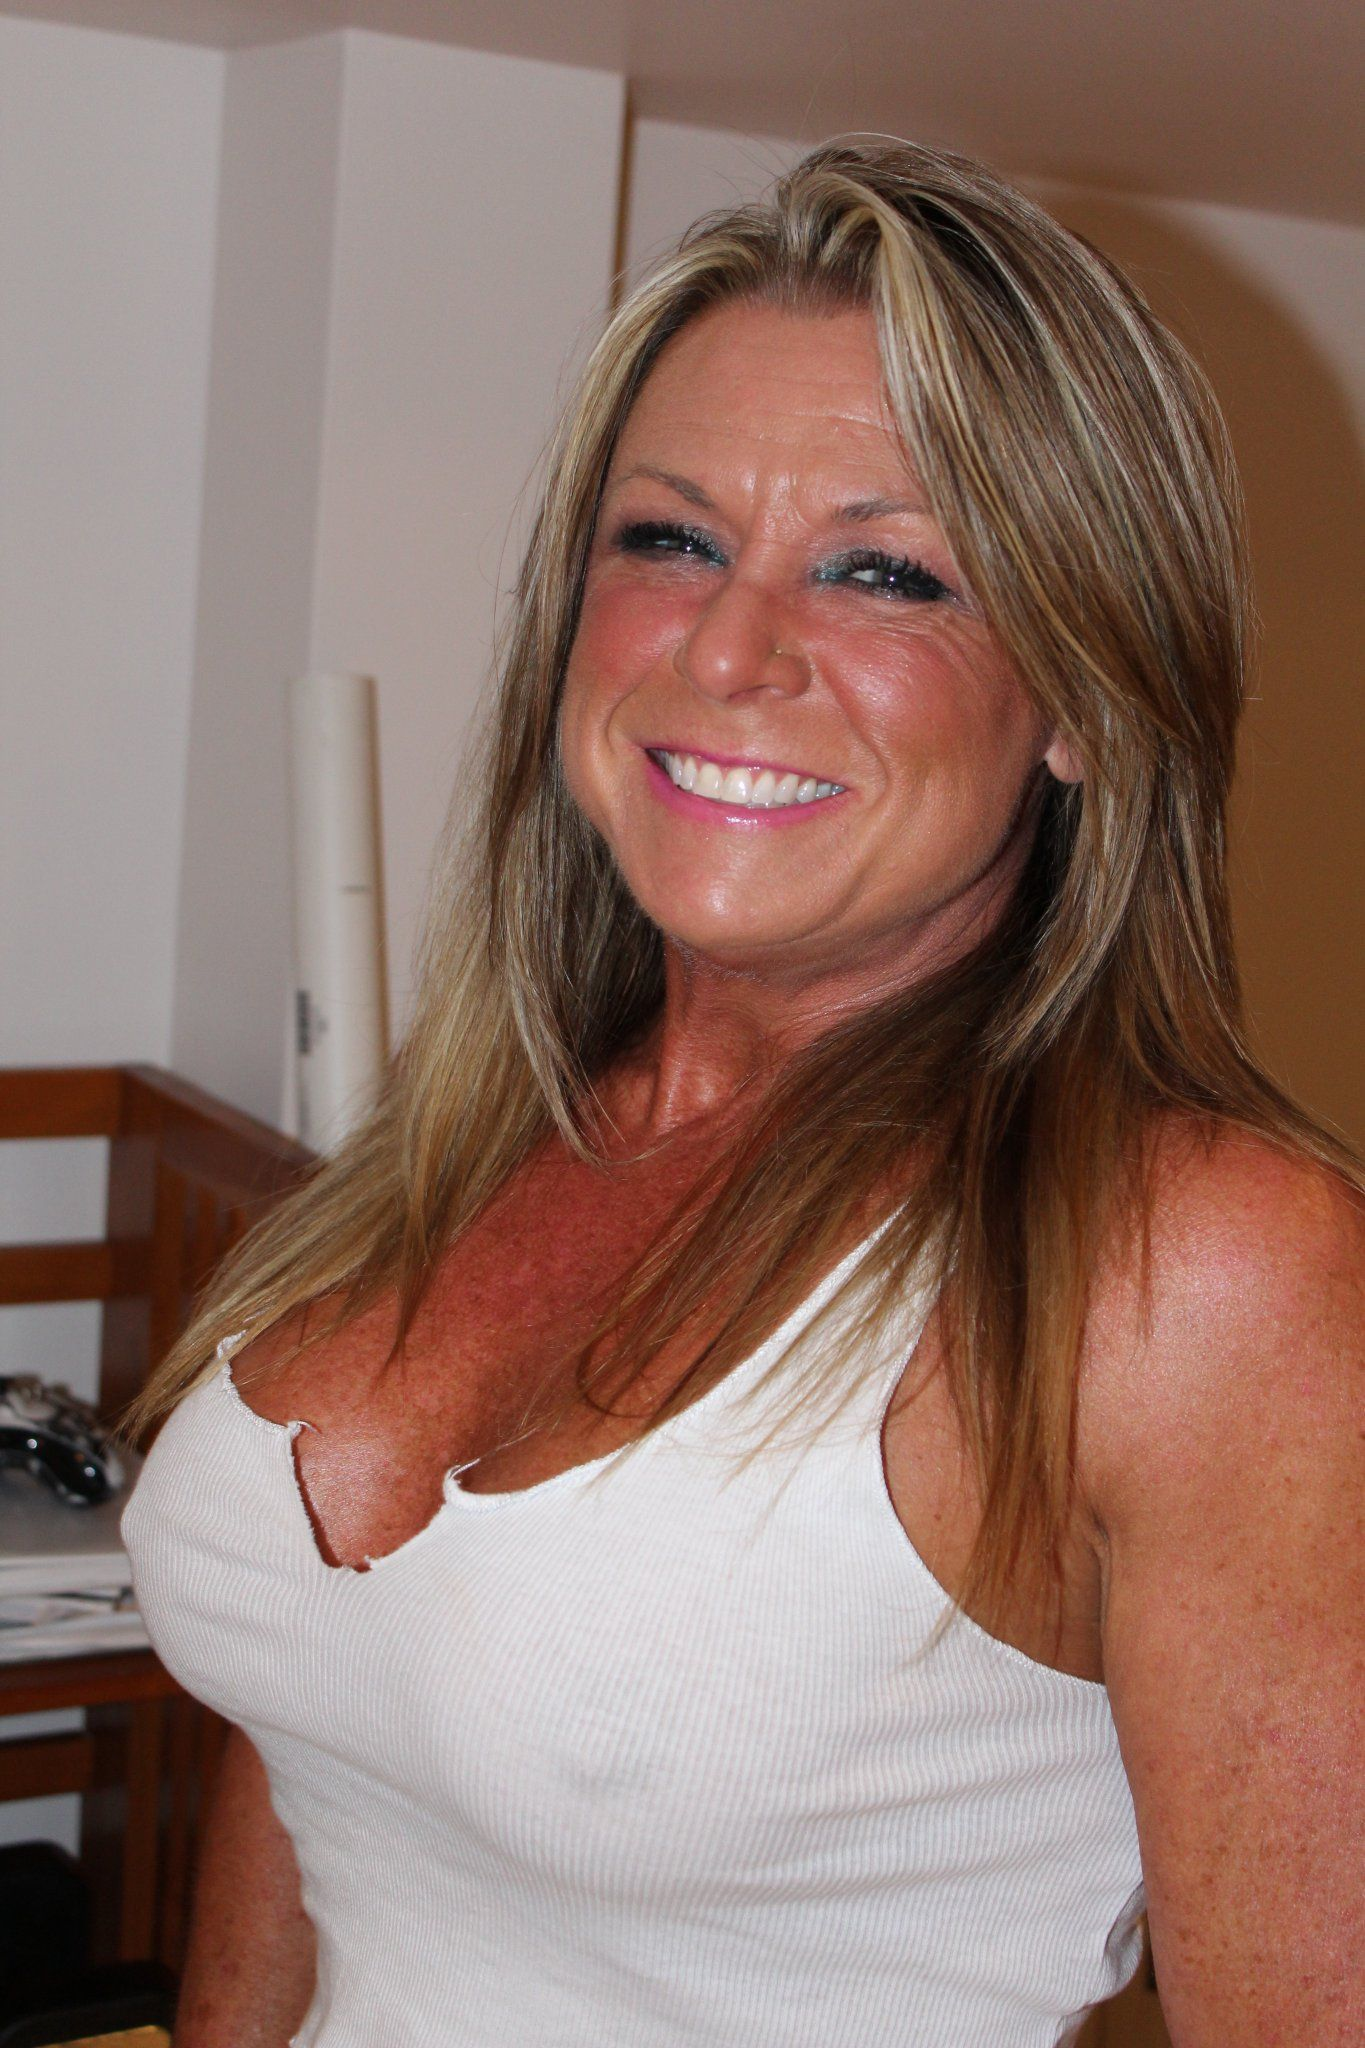 clintonville milf women By clicking sign up, i agree to receive transactional and promotional emails from matchcom i understand that i am free to withdraw consent at any time.